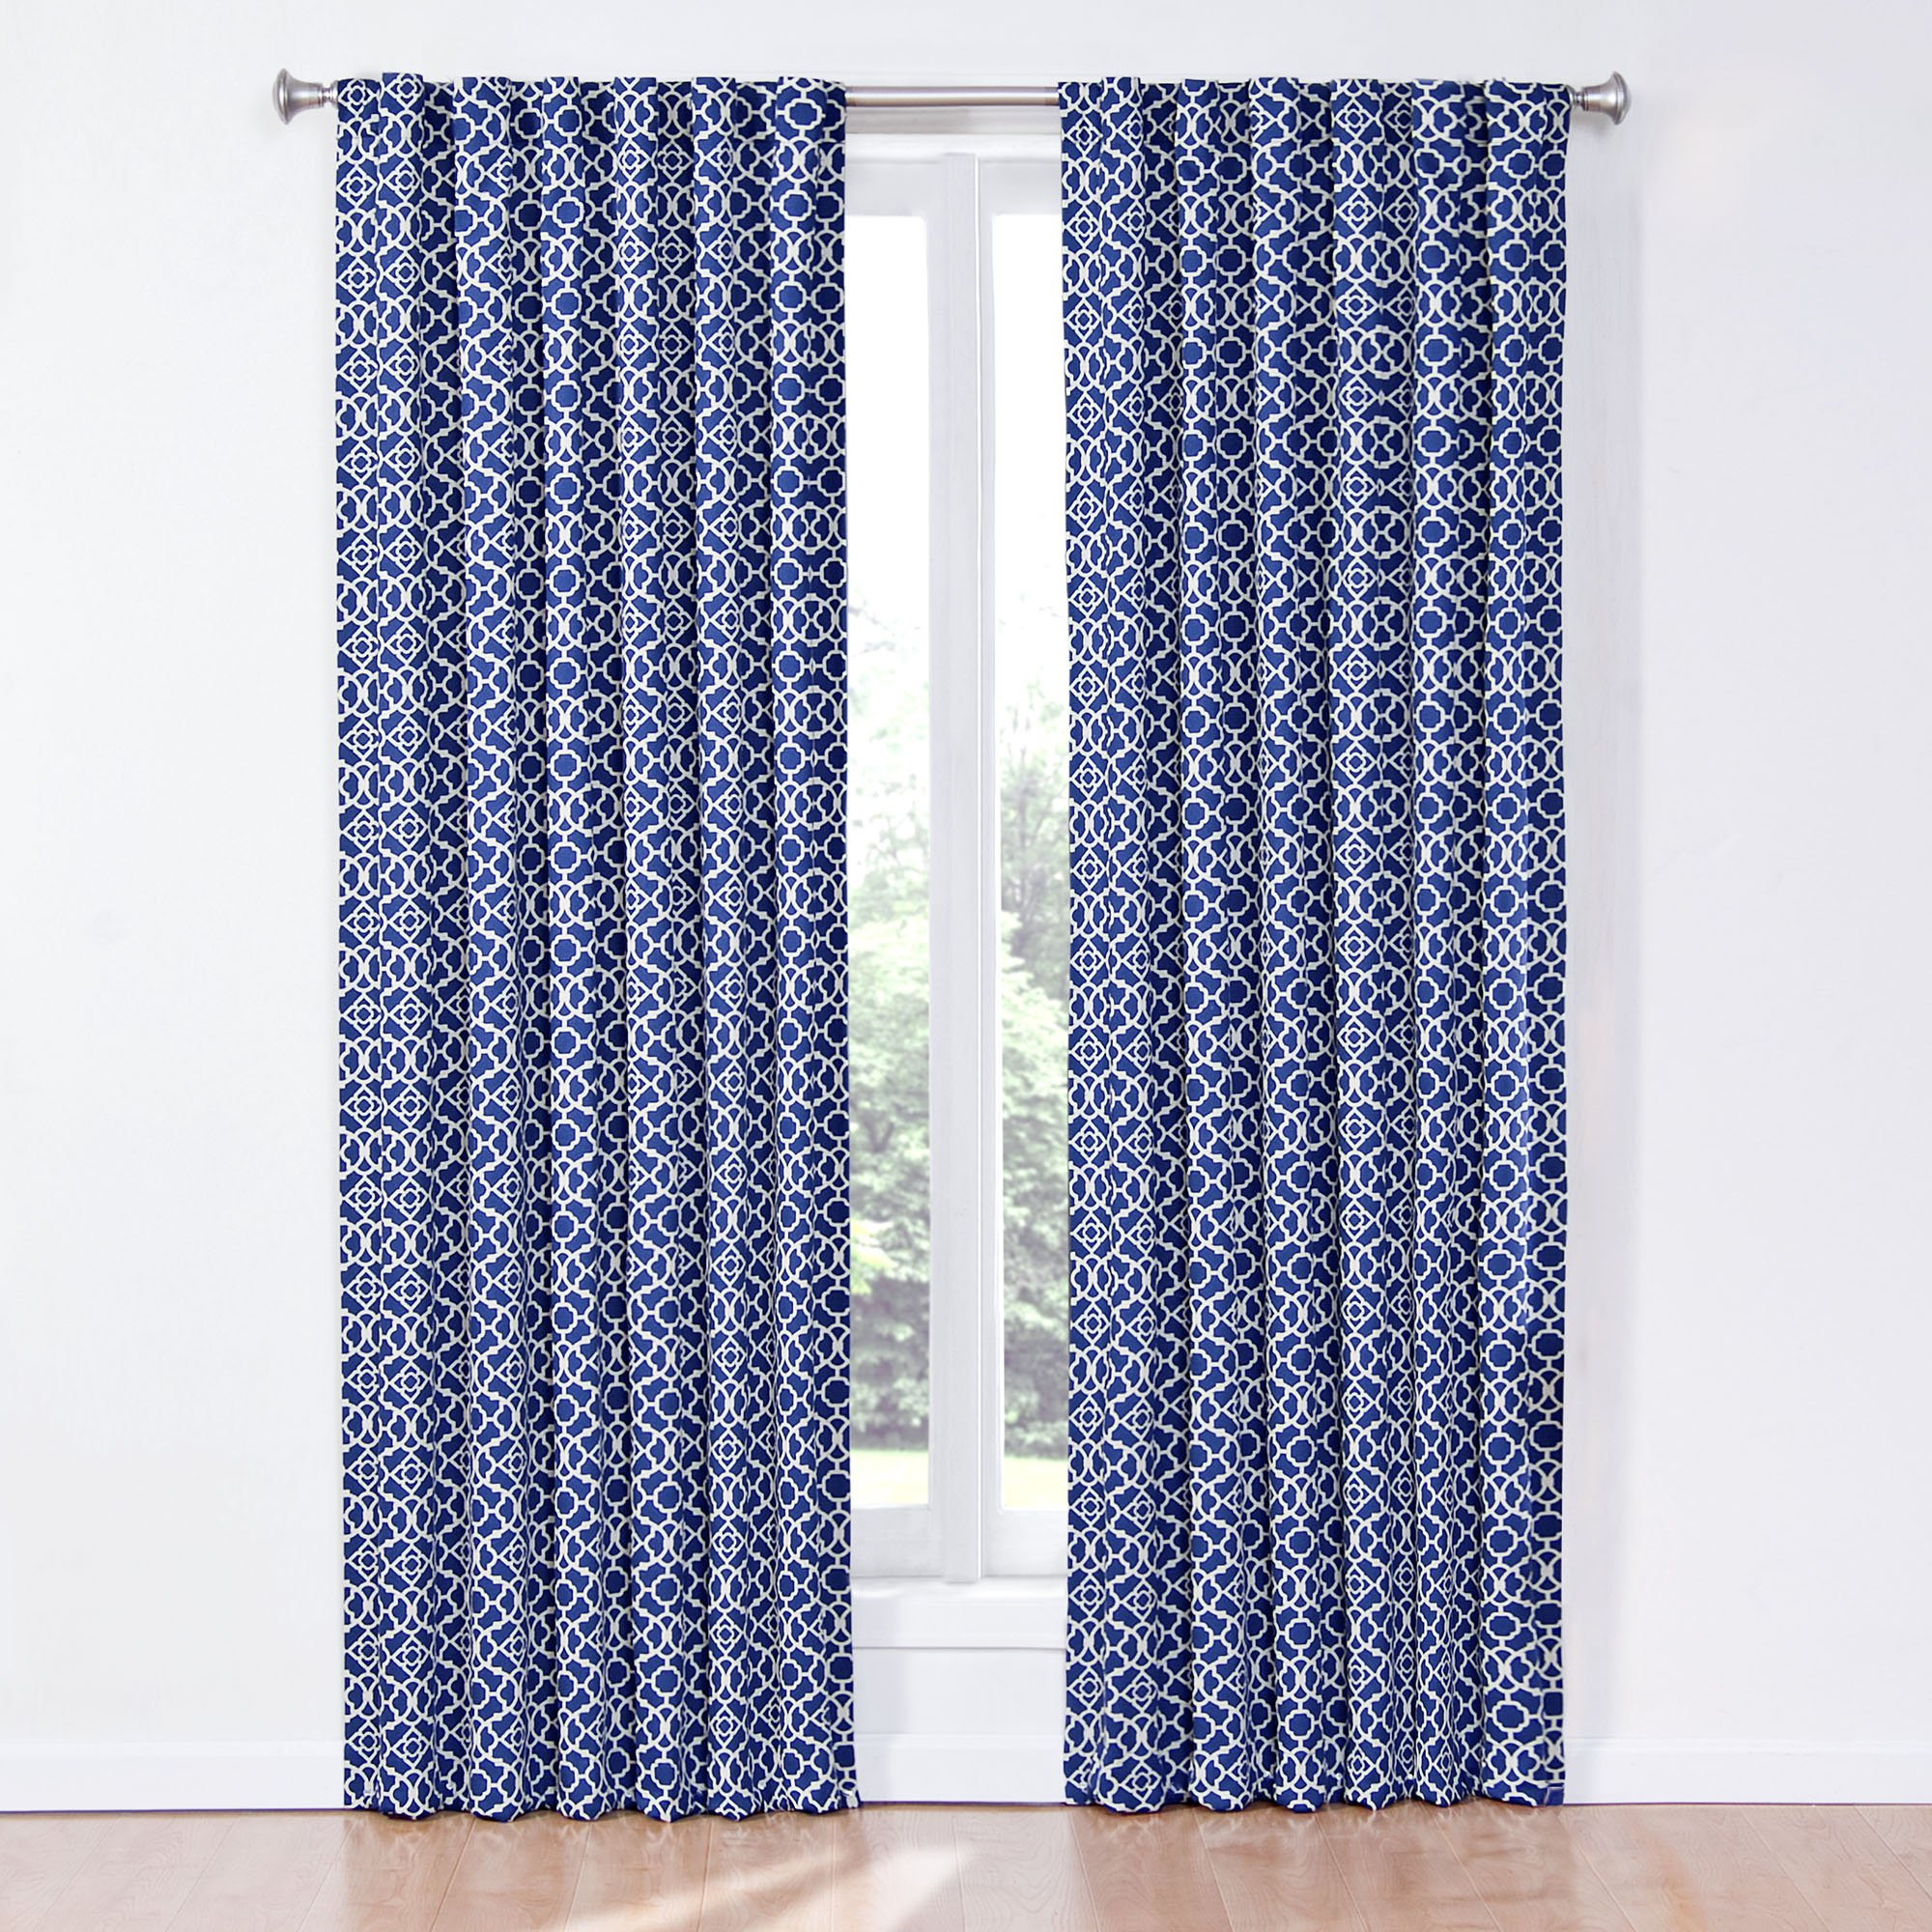 French country curtains waverly - Best Deals On Waverly Garden Room Curtains Superoffers